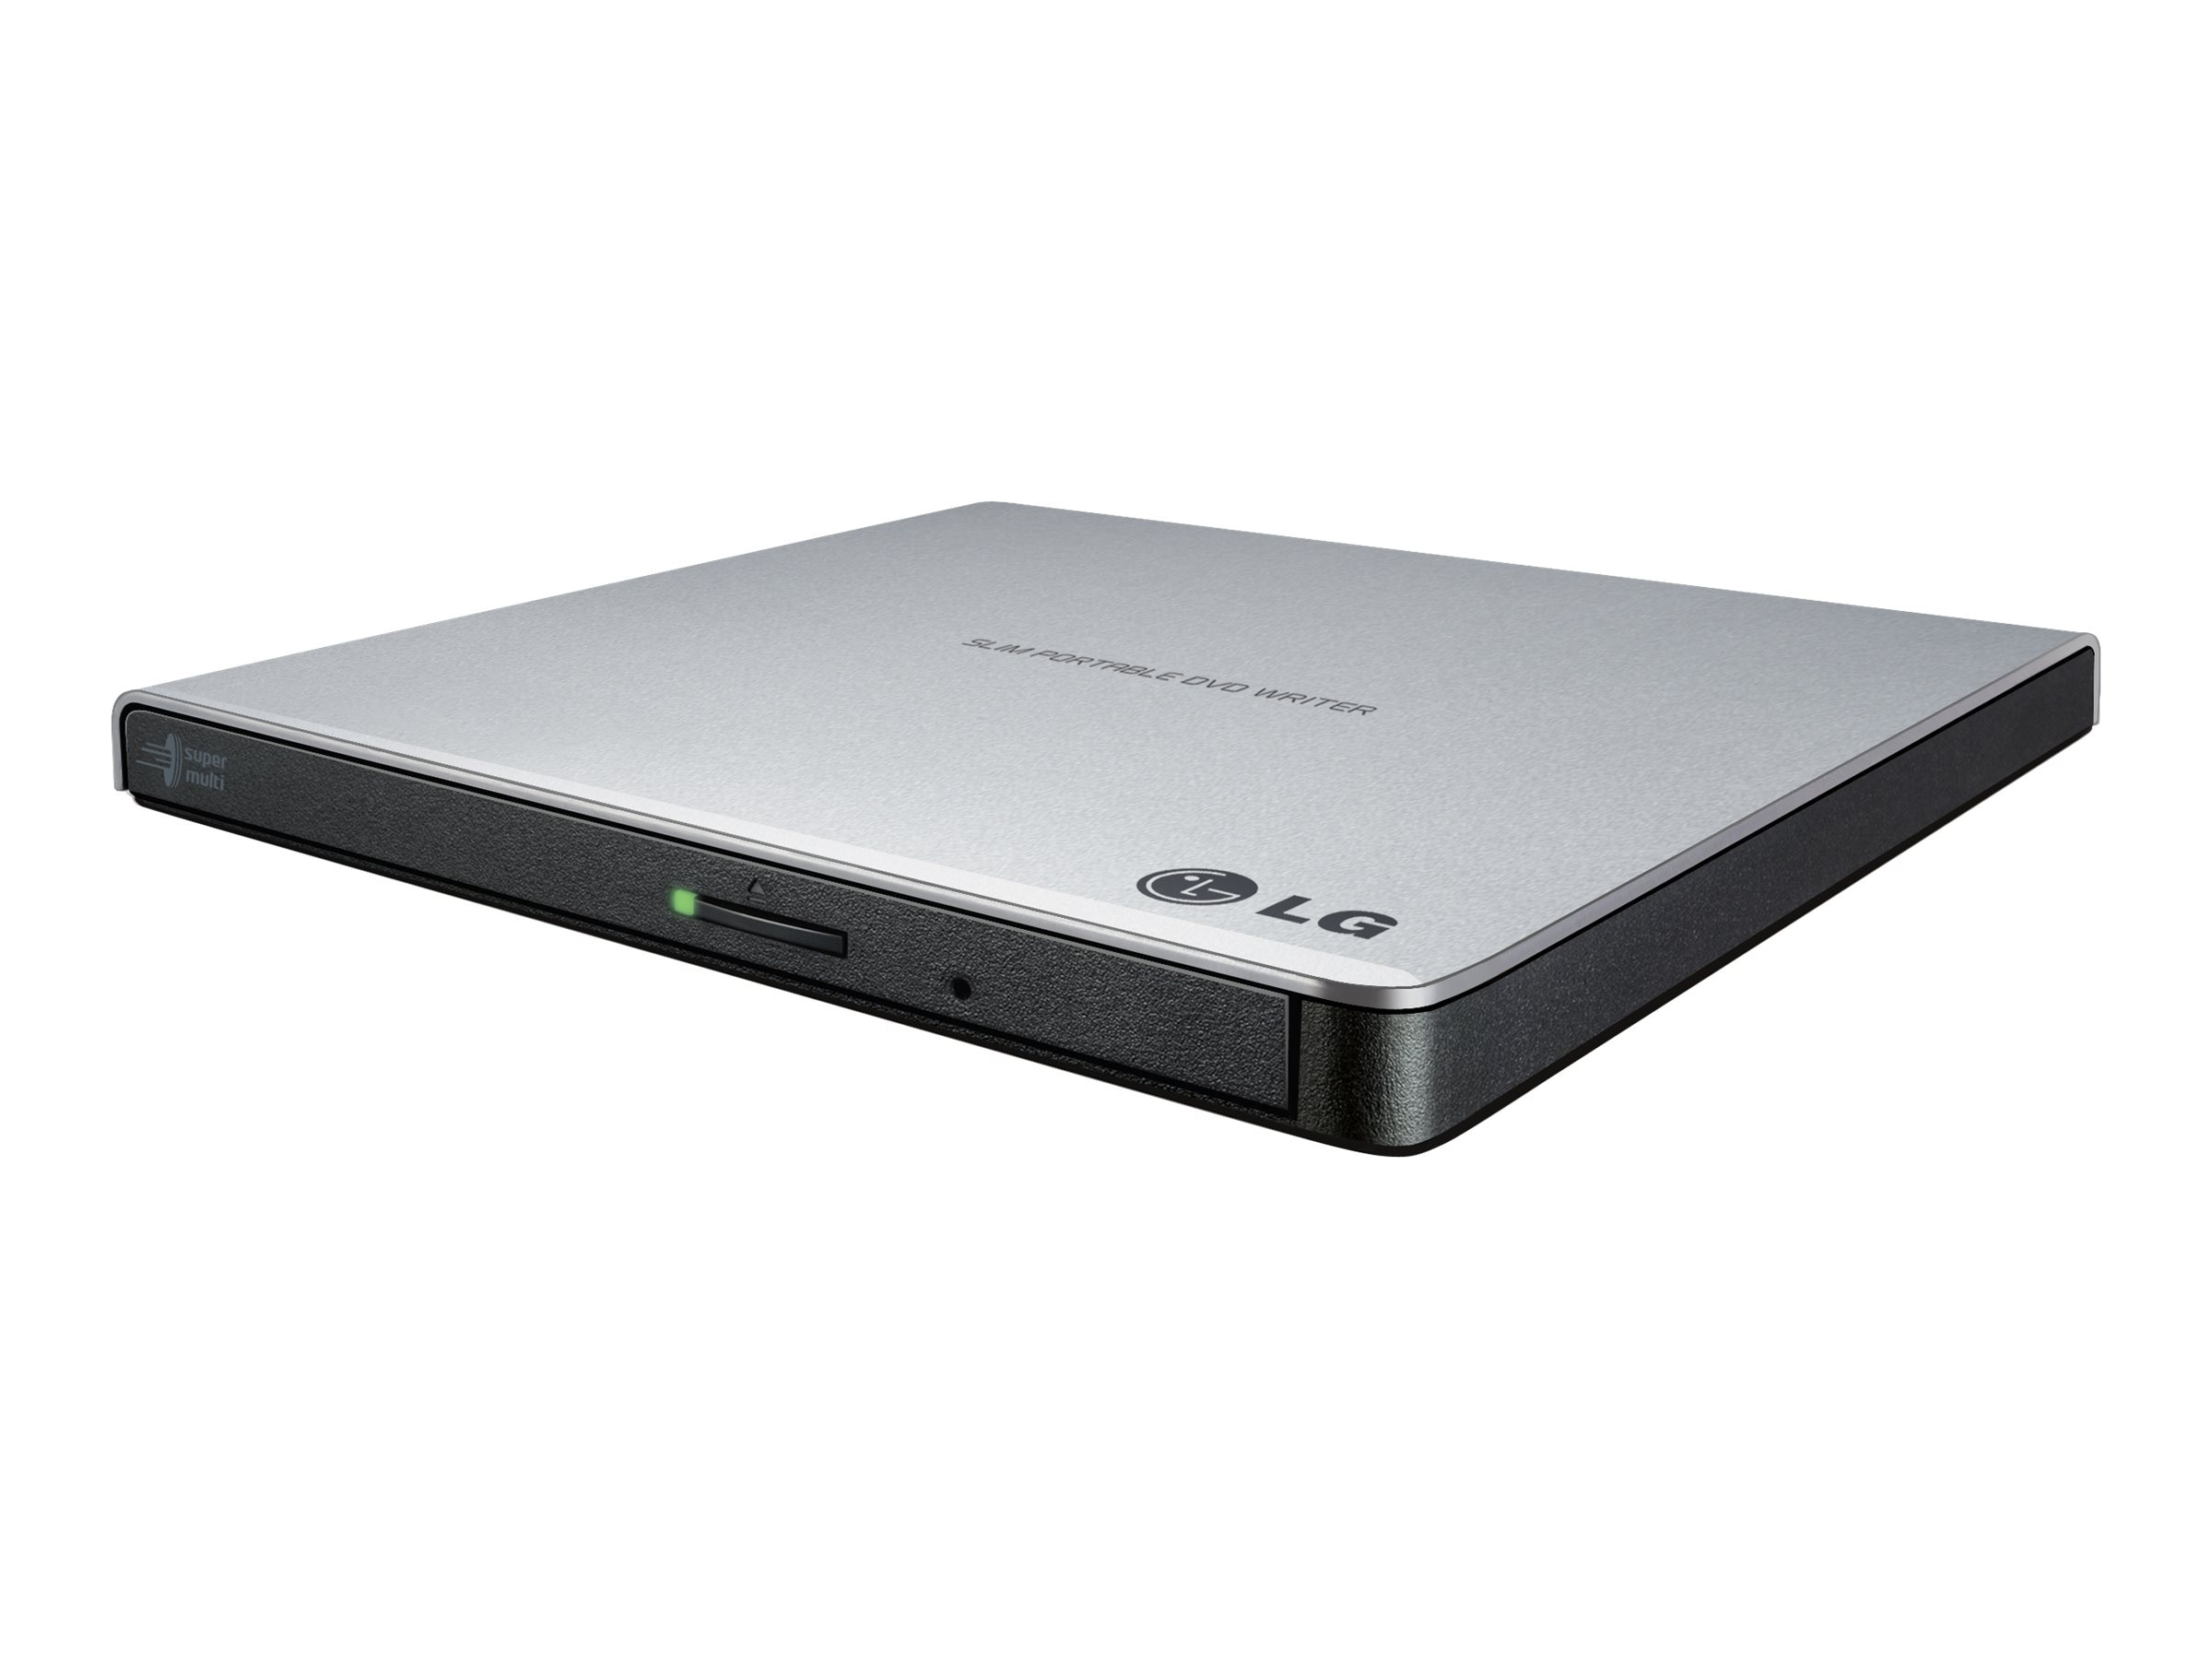 LG Ultra-Slim Portable DVD Burner & Drive w  M-Disc Support, GP65NS60, 17922968, DVD Drives - External